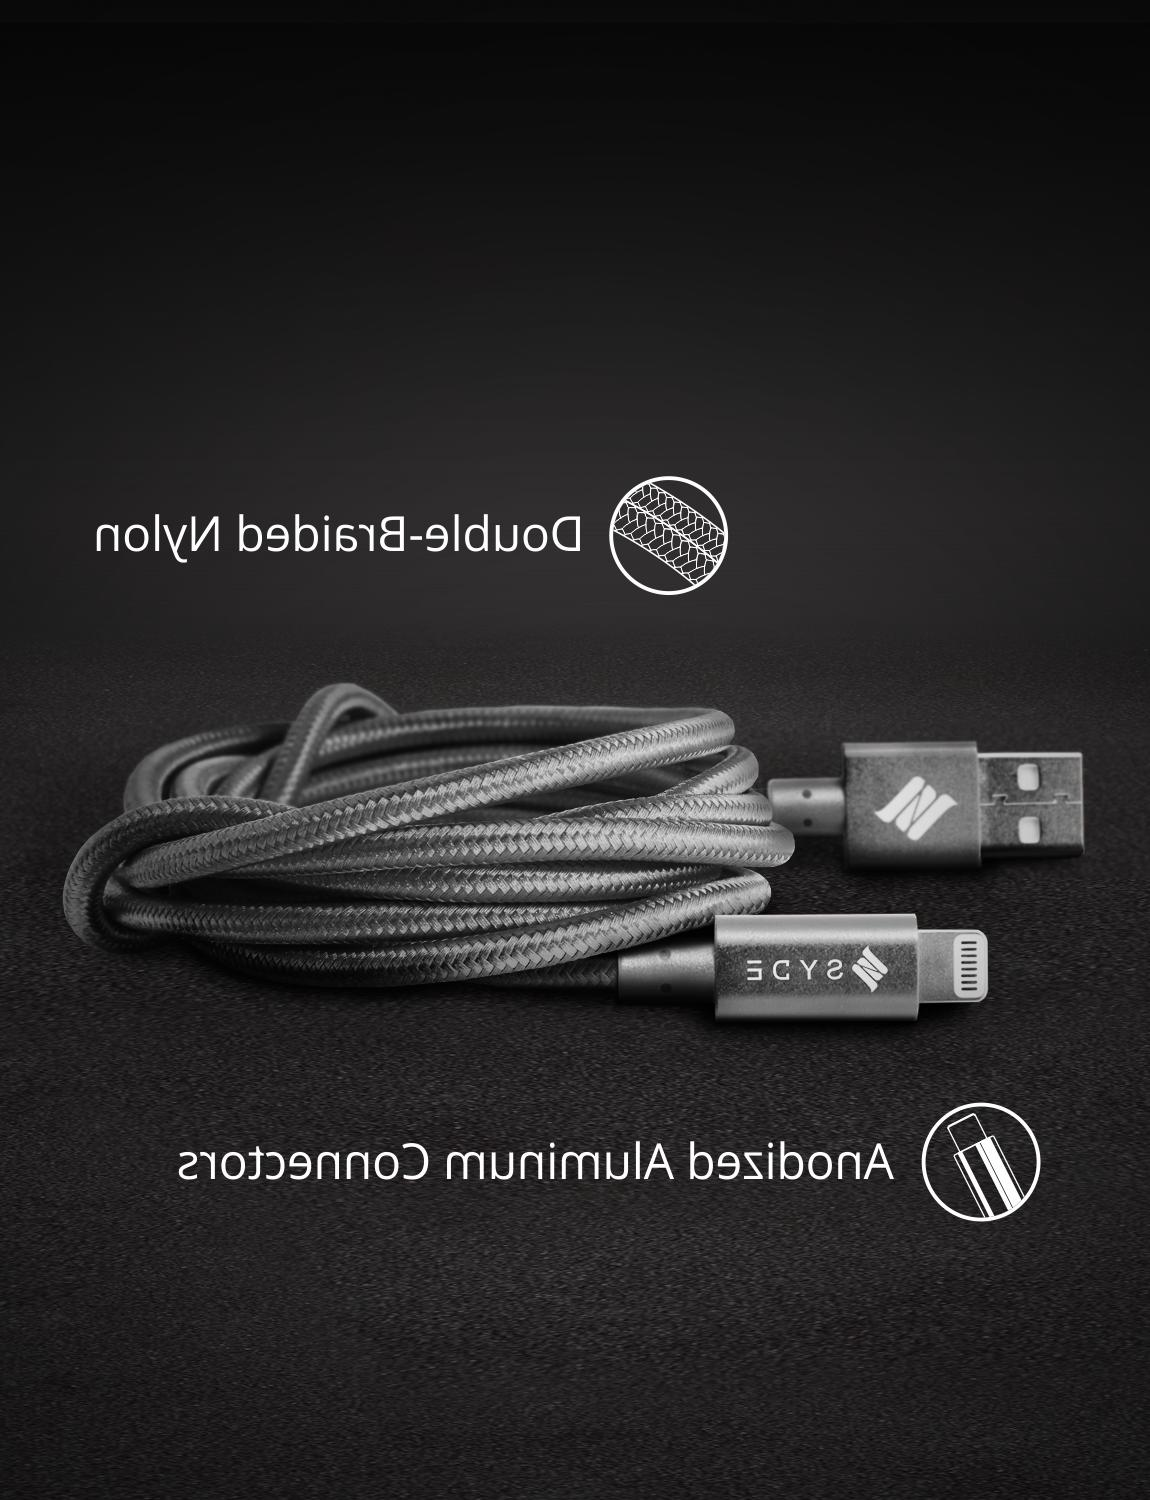 Built with OEM Lightning Cable Cord